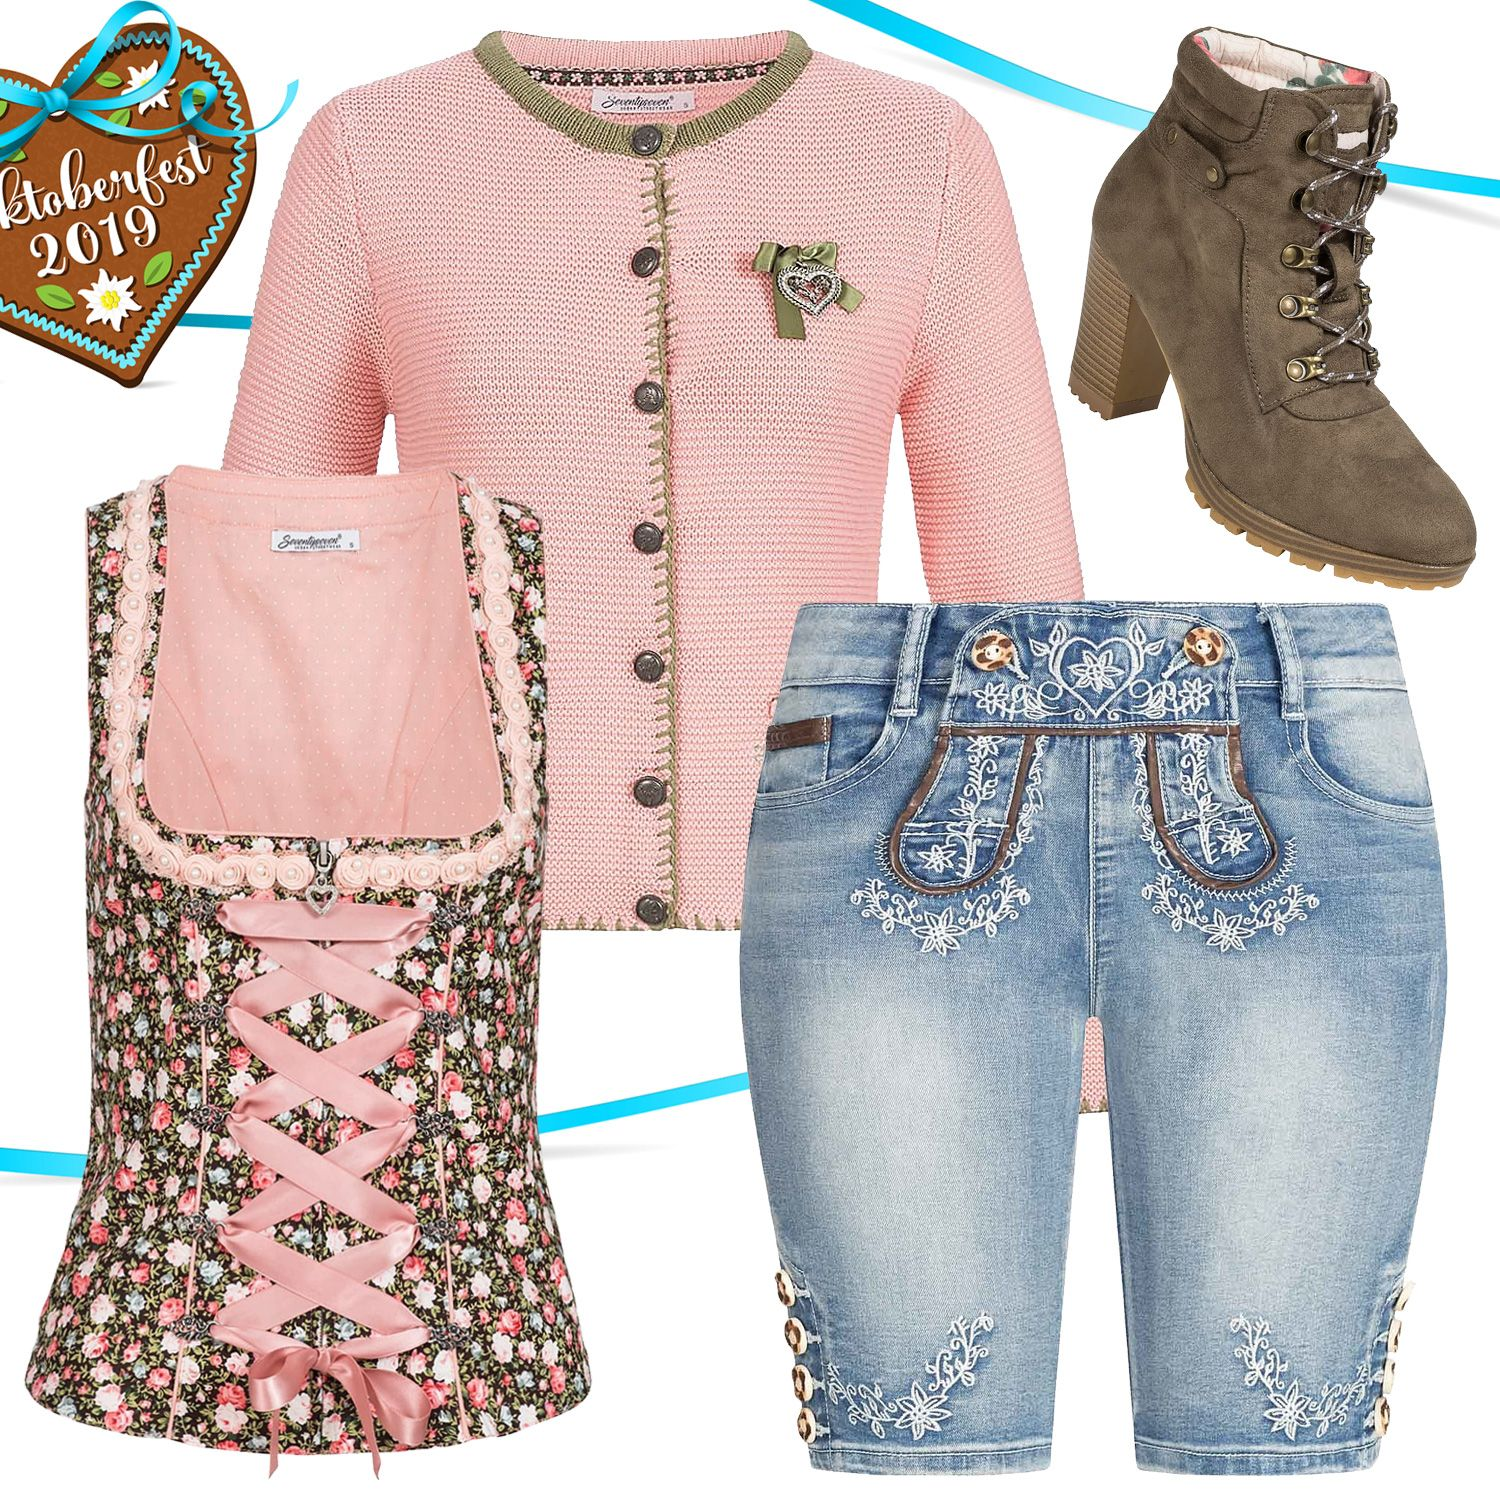 Oktoberfest outfit for only € 130.96